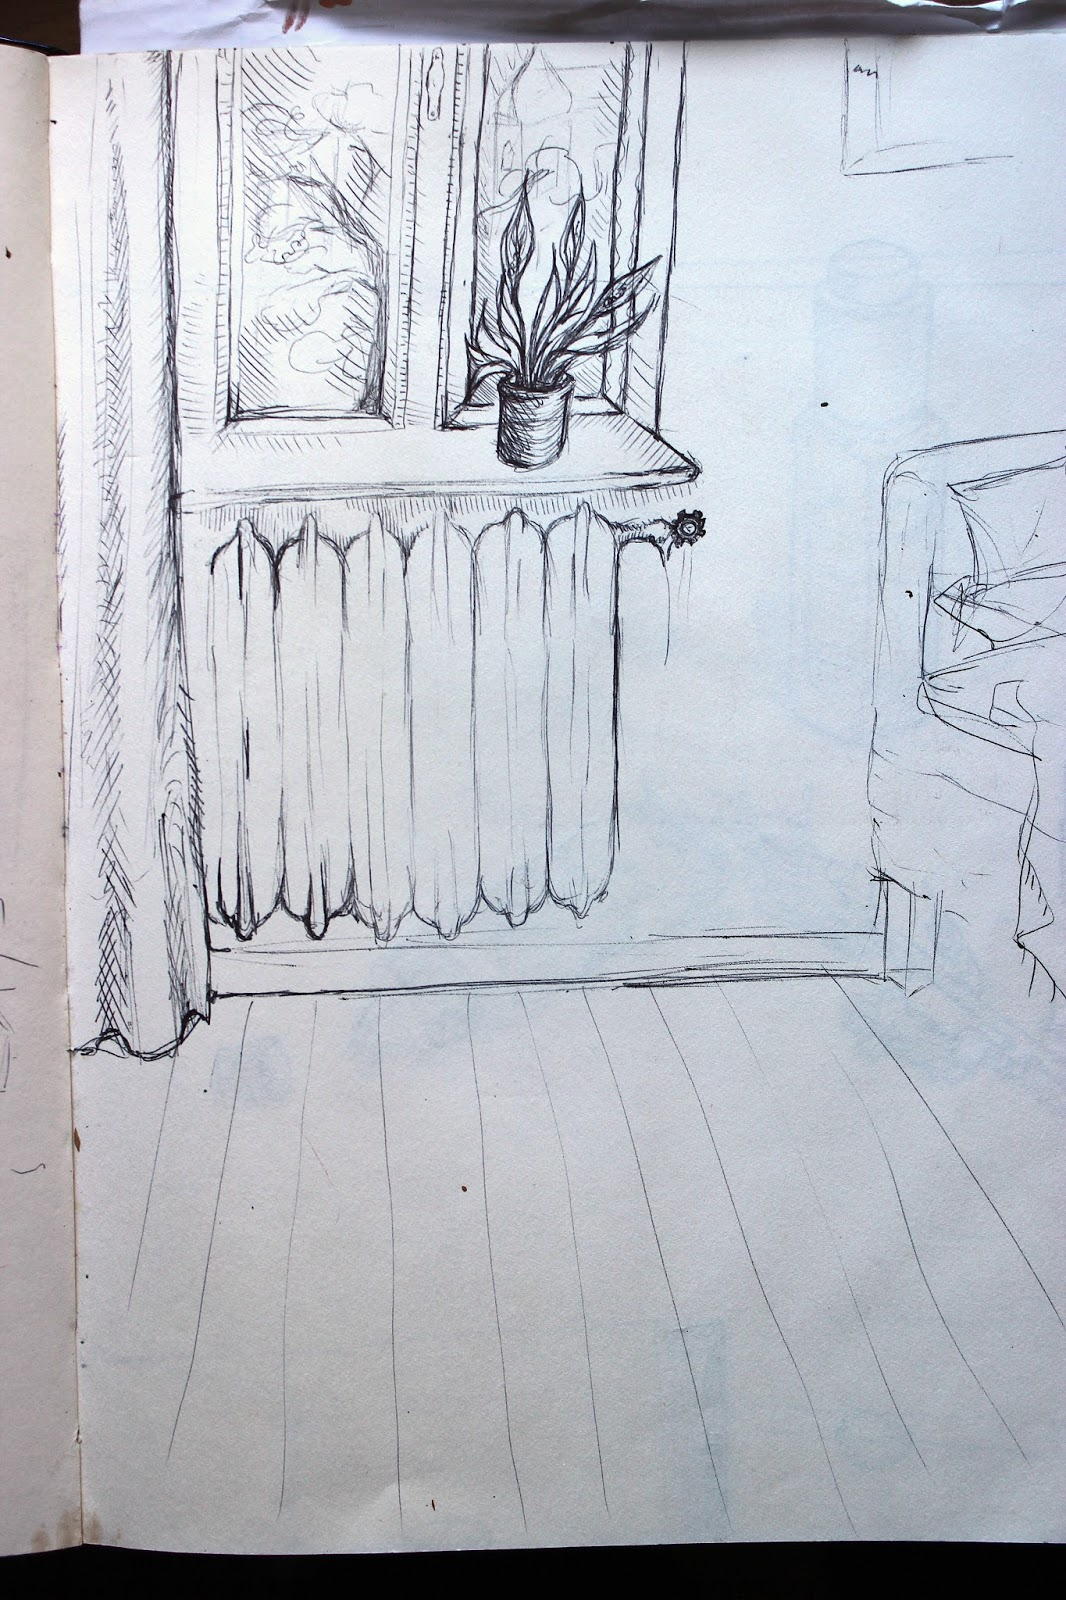 Drawing Sketch Illustration Pencil Sketchpad Notebook Bedroom Radiator